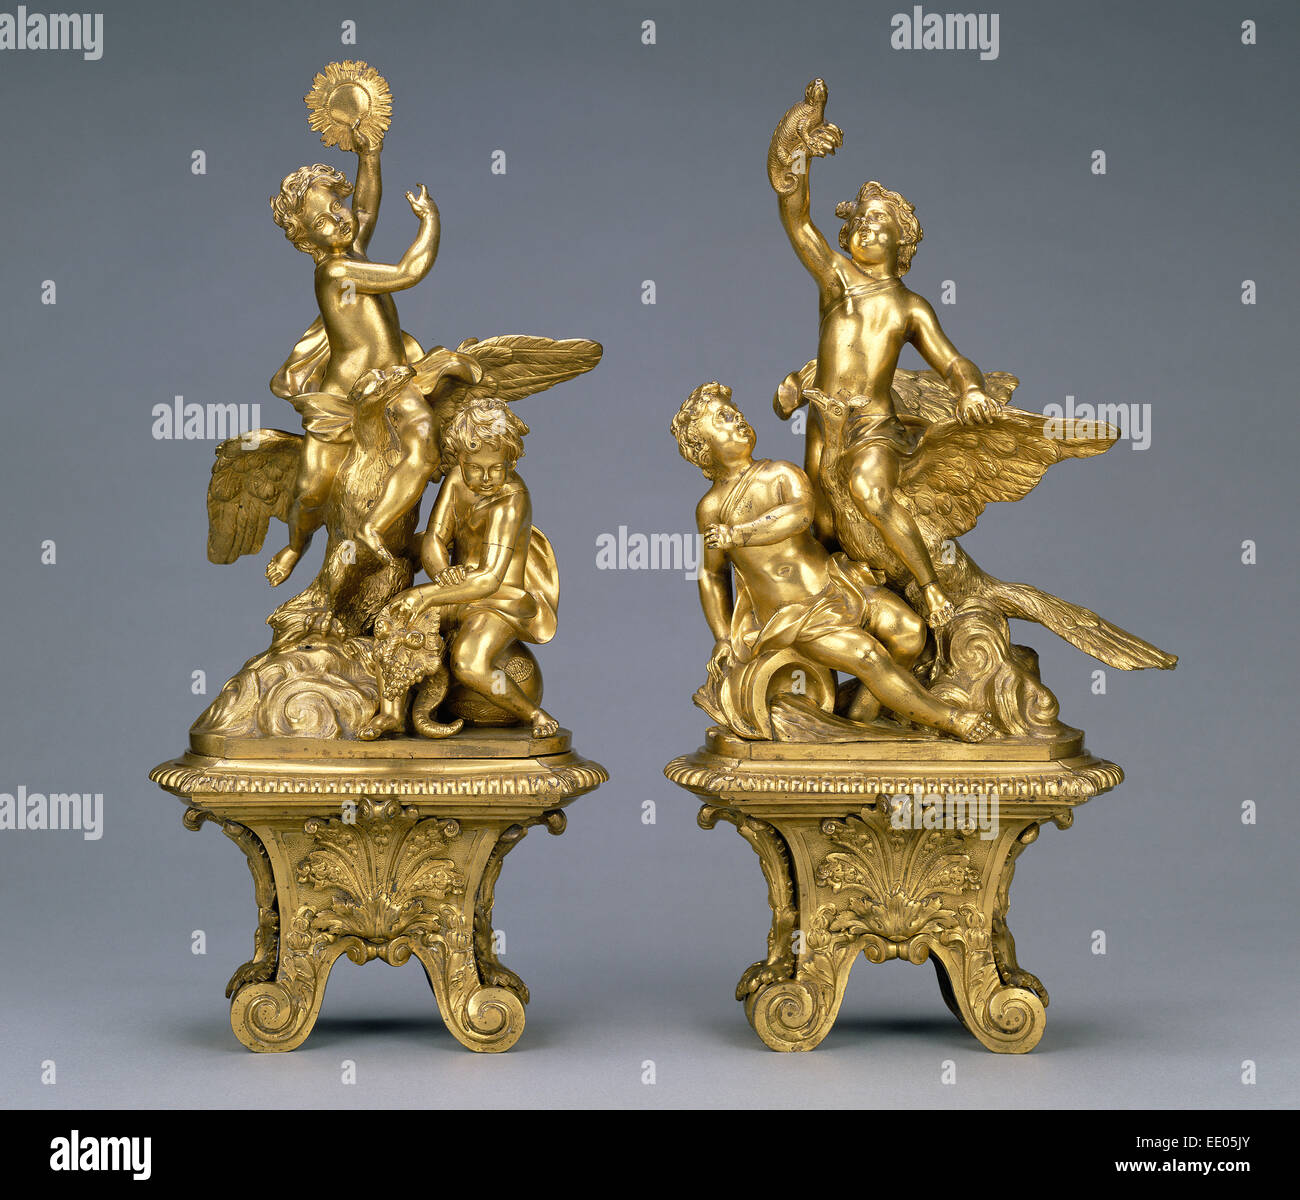 Pair of Firedogs; Unknown; 1690 - 1715; Gilt bronze - Stock Image